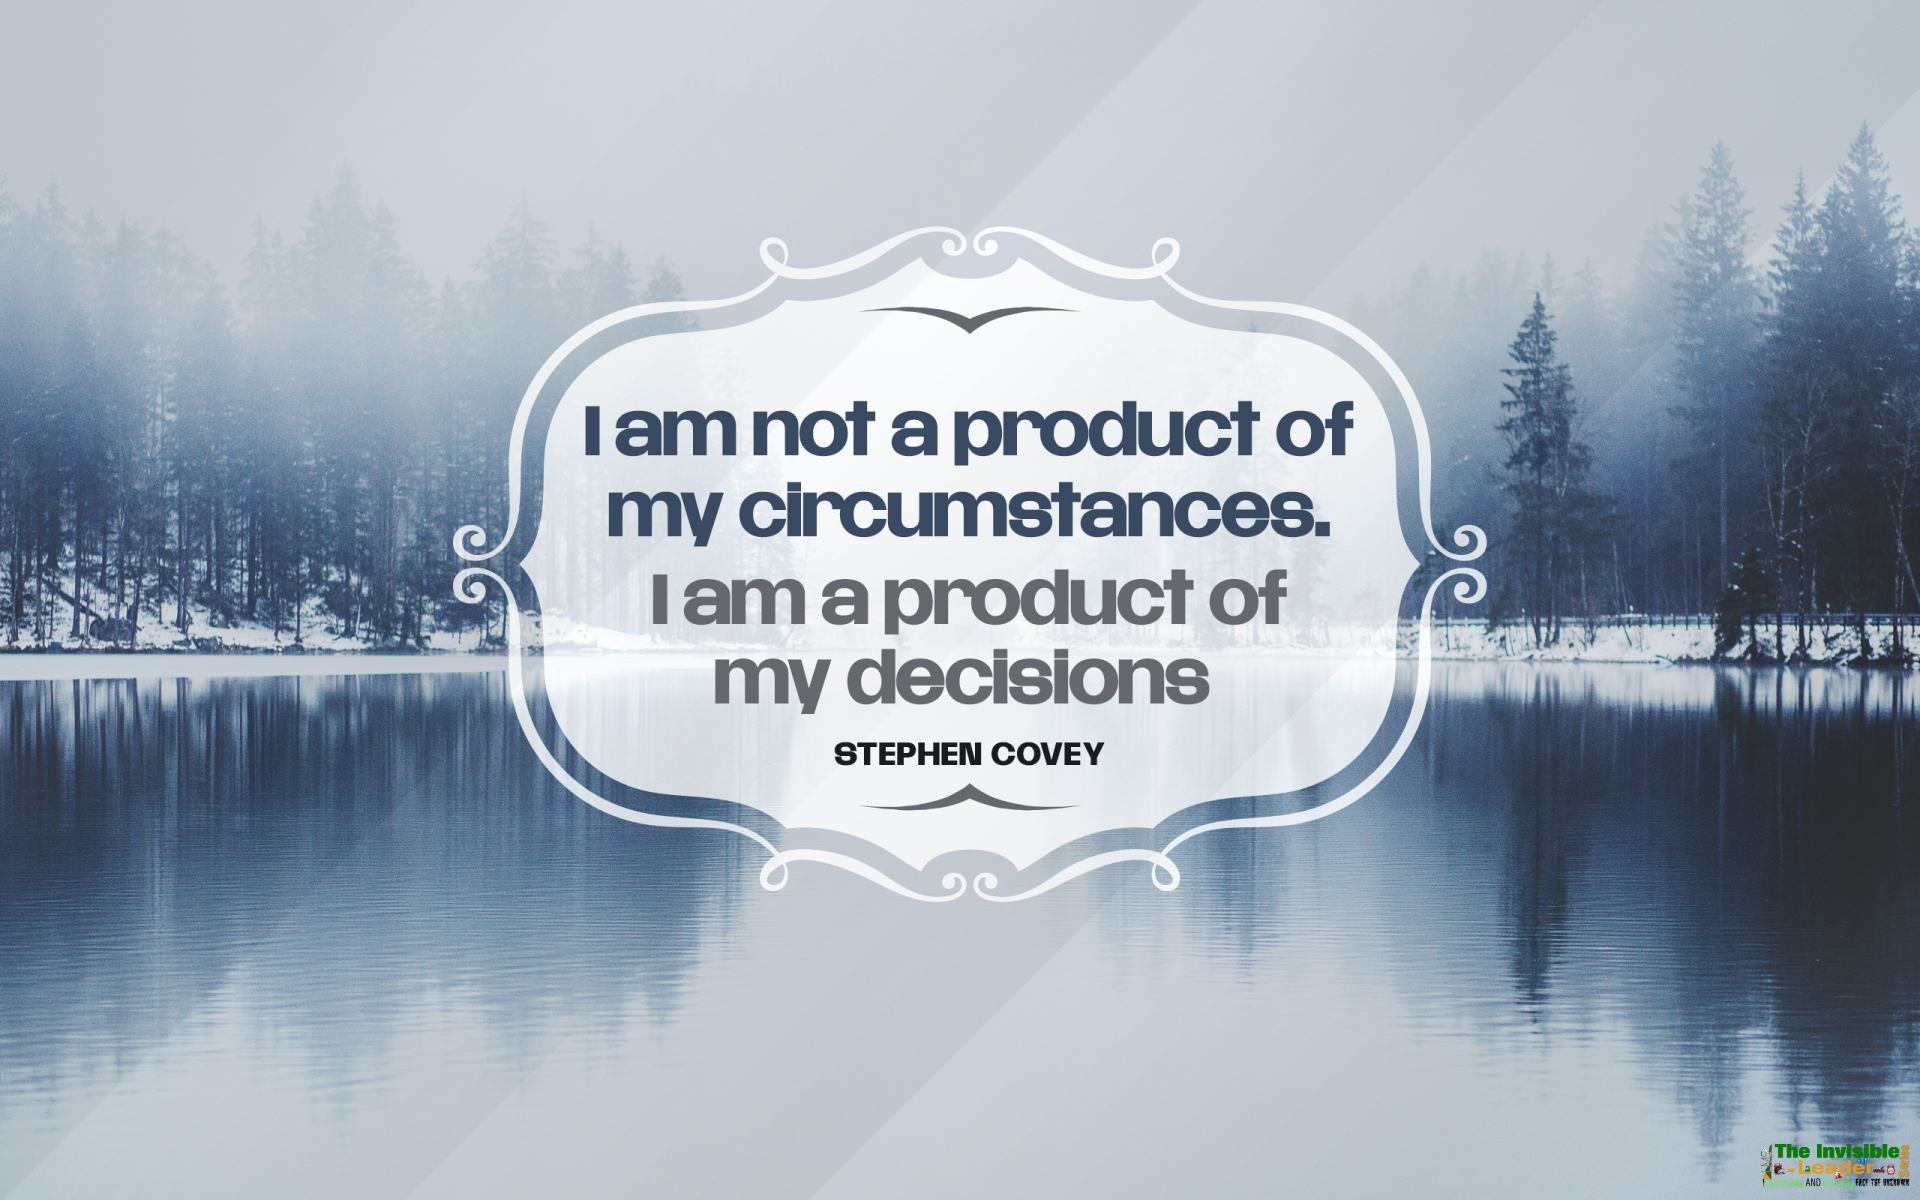 "v I am not a product of mv circumstances. I am a product of w ., if f mv decisions _. t * 44.? 1 i...' STEPHEN COVEY / ~71"" https://inspirational.ly"